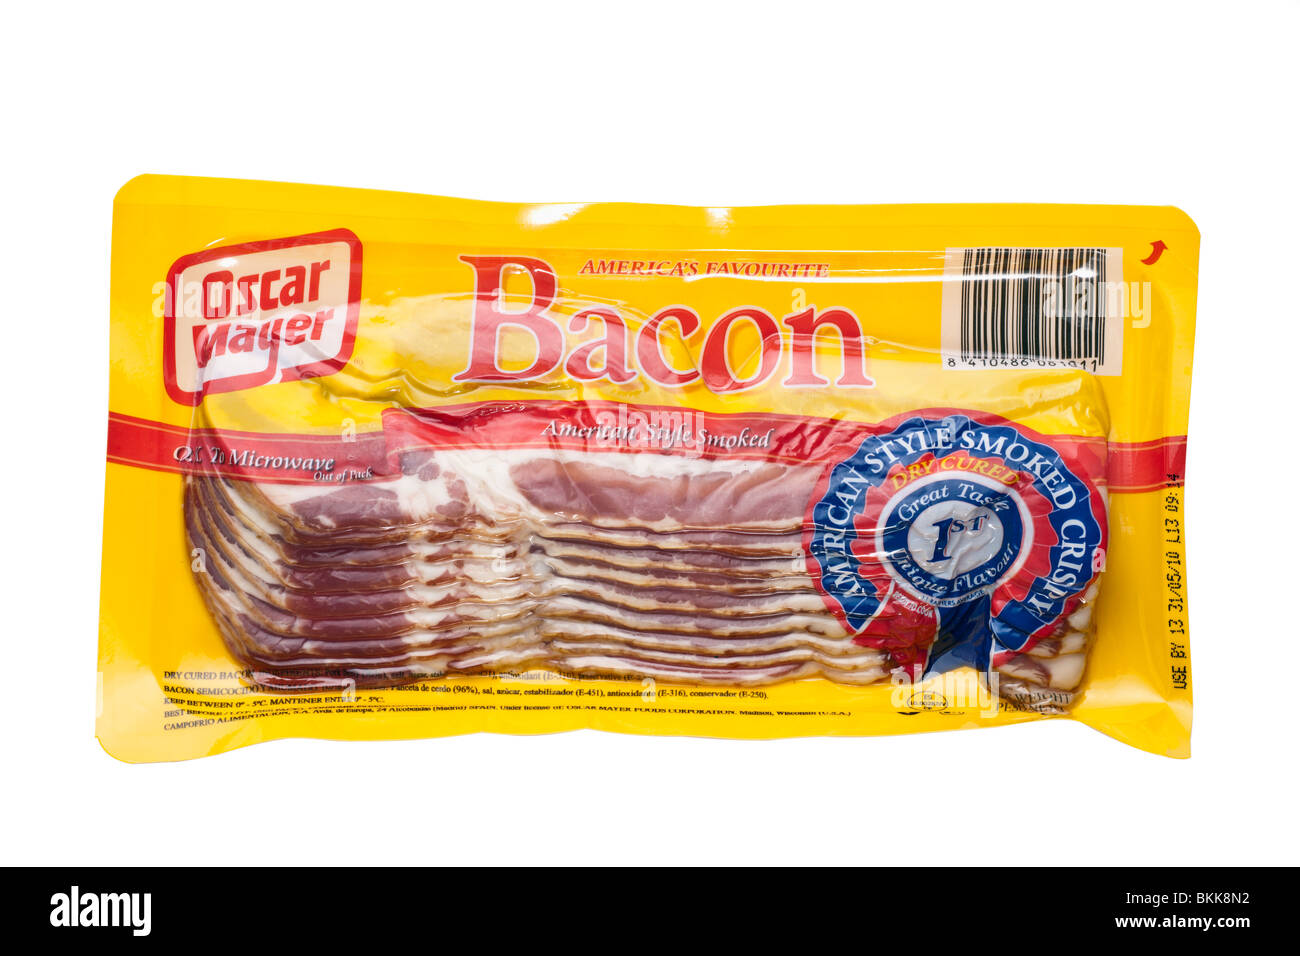 Sealed Pack of Oscar Mayer American style smoked crispy bacon - Stock Image